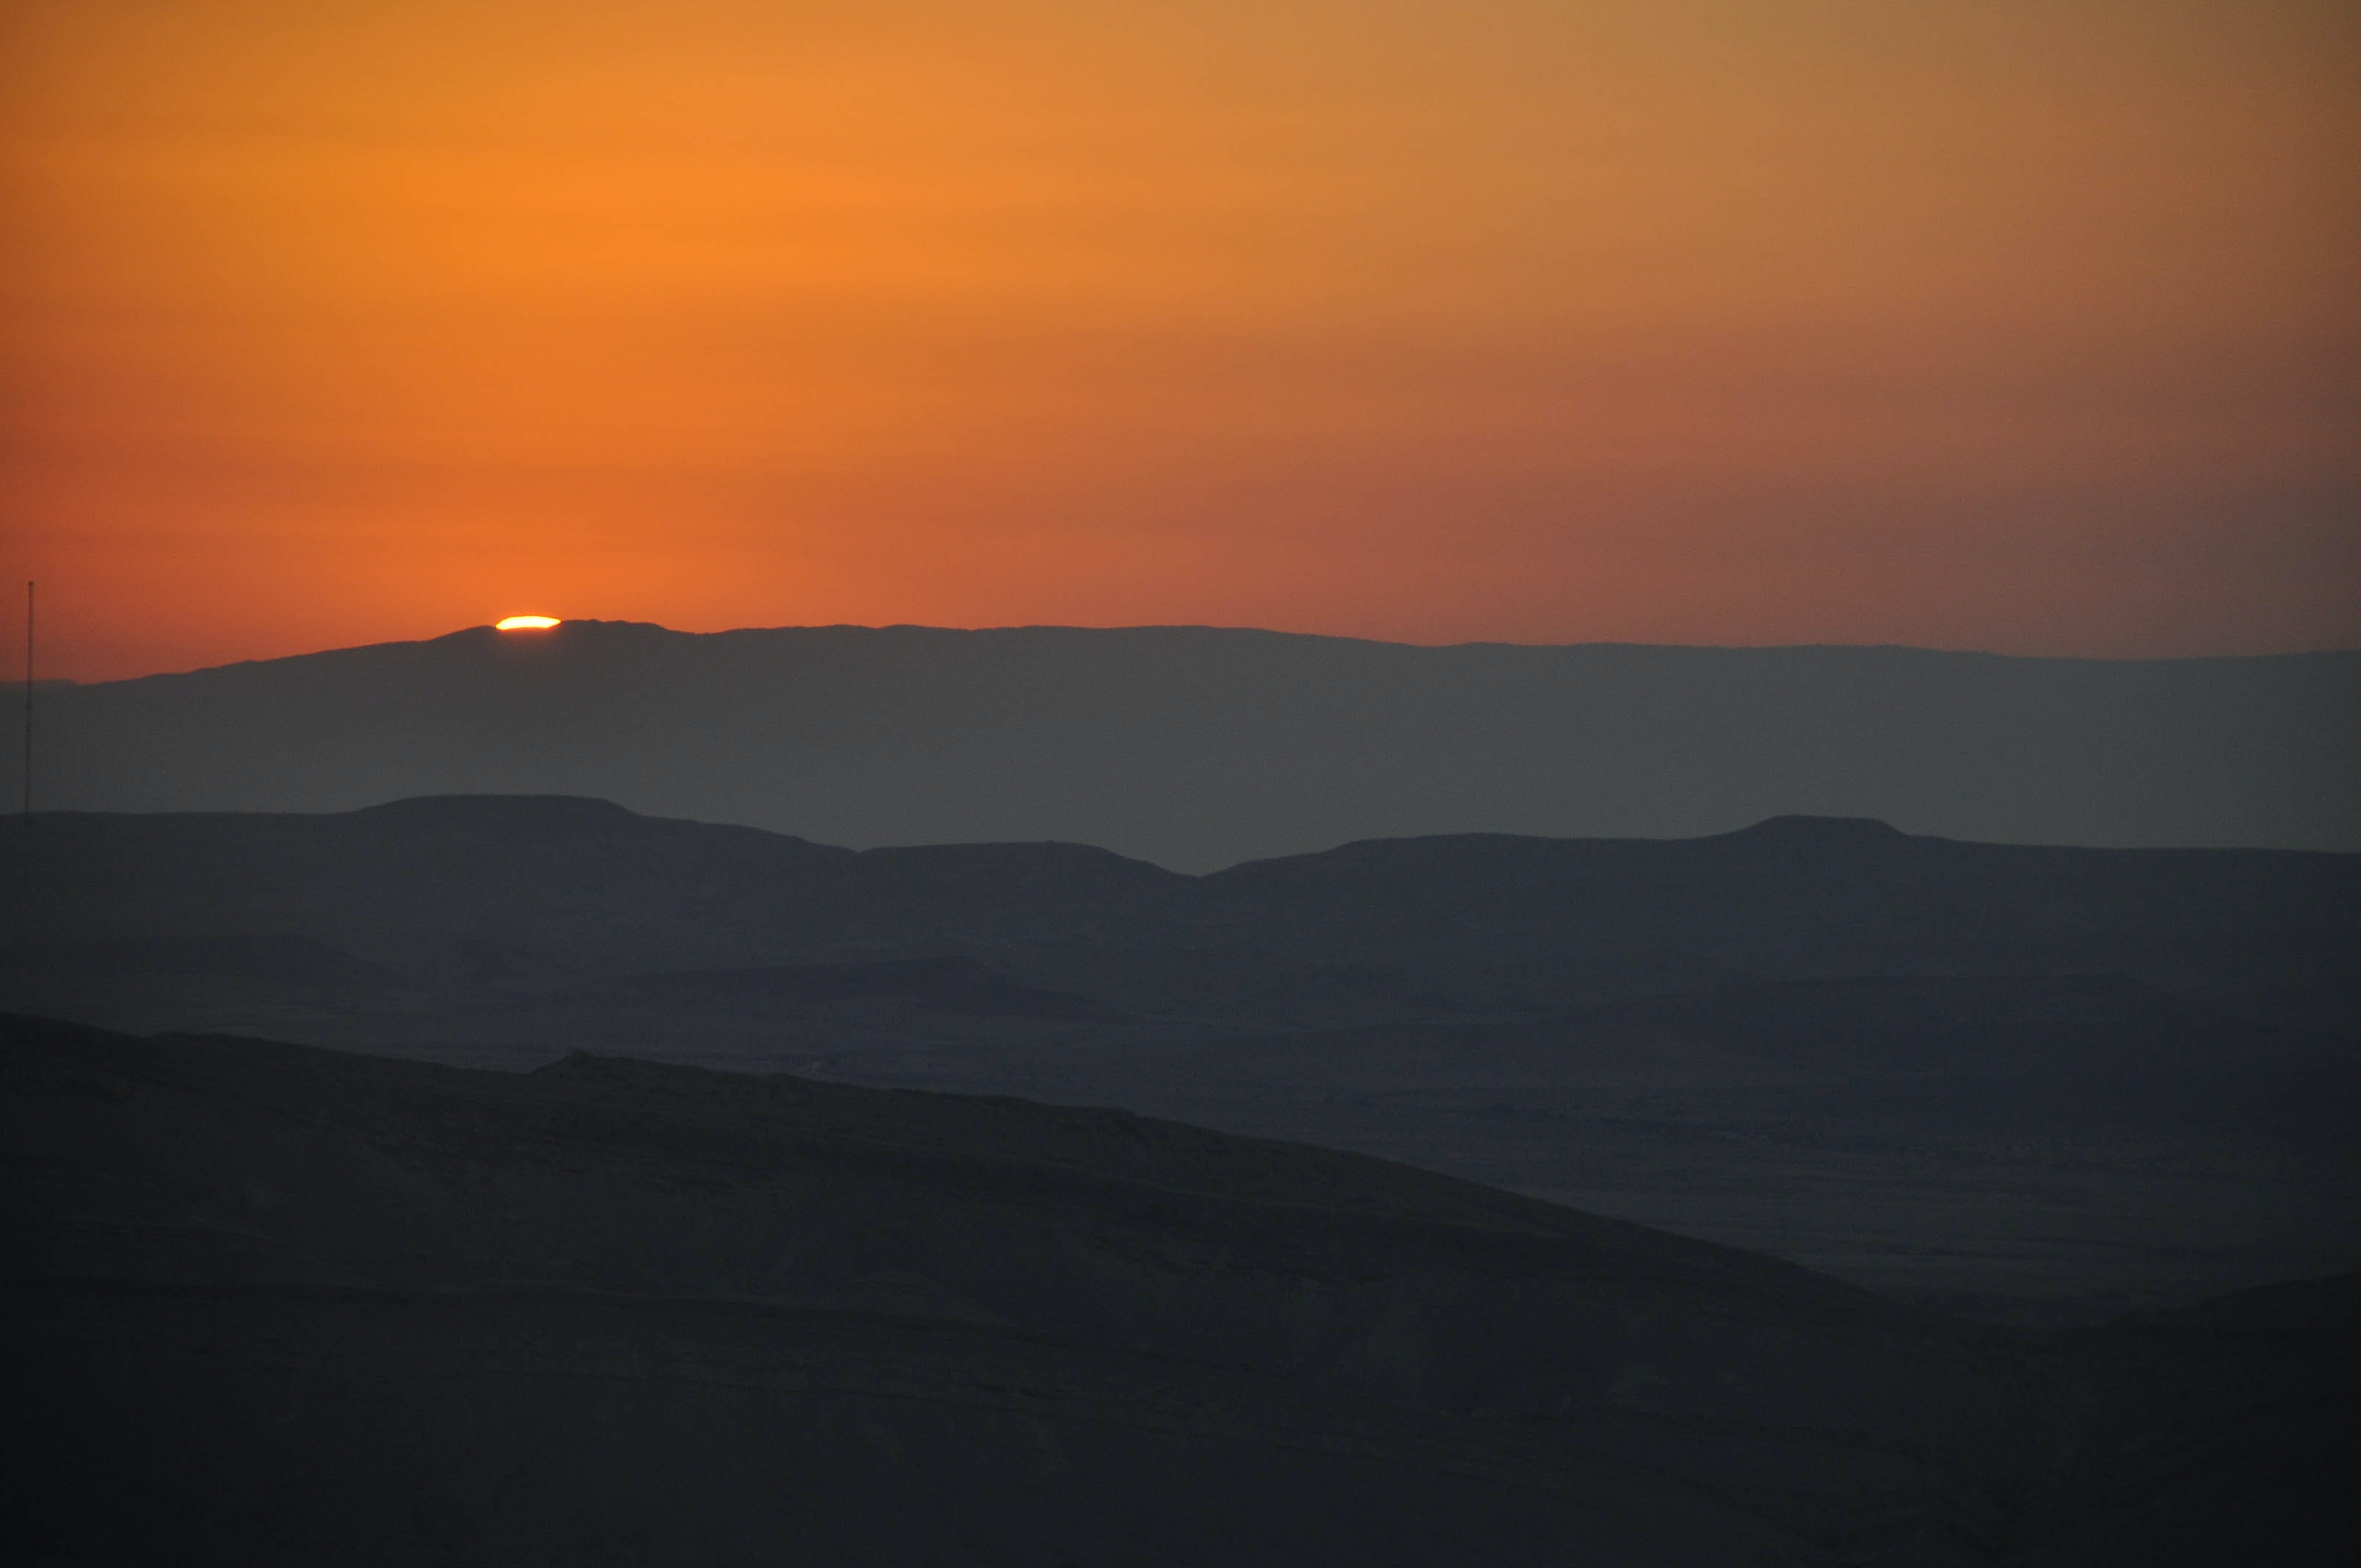 silhouette photography of mountain during senset